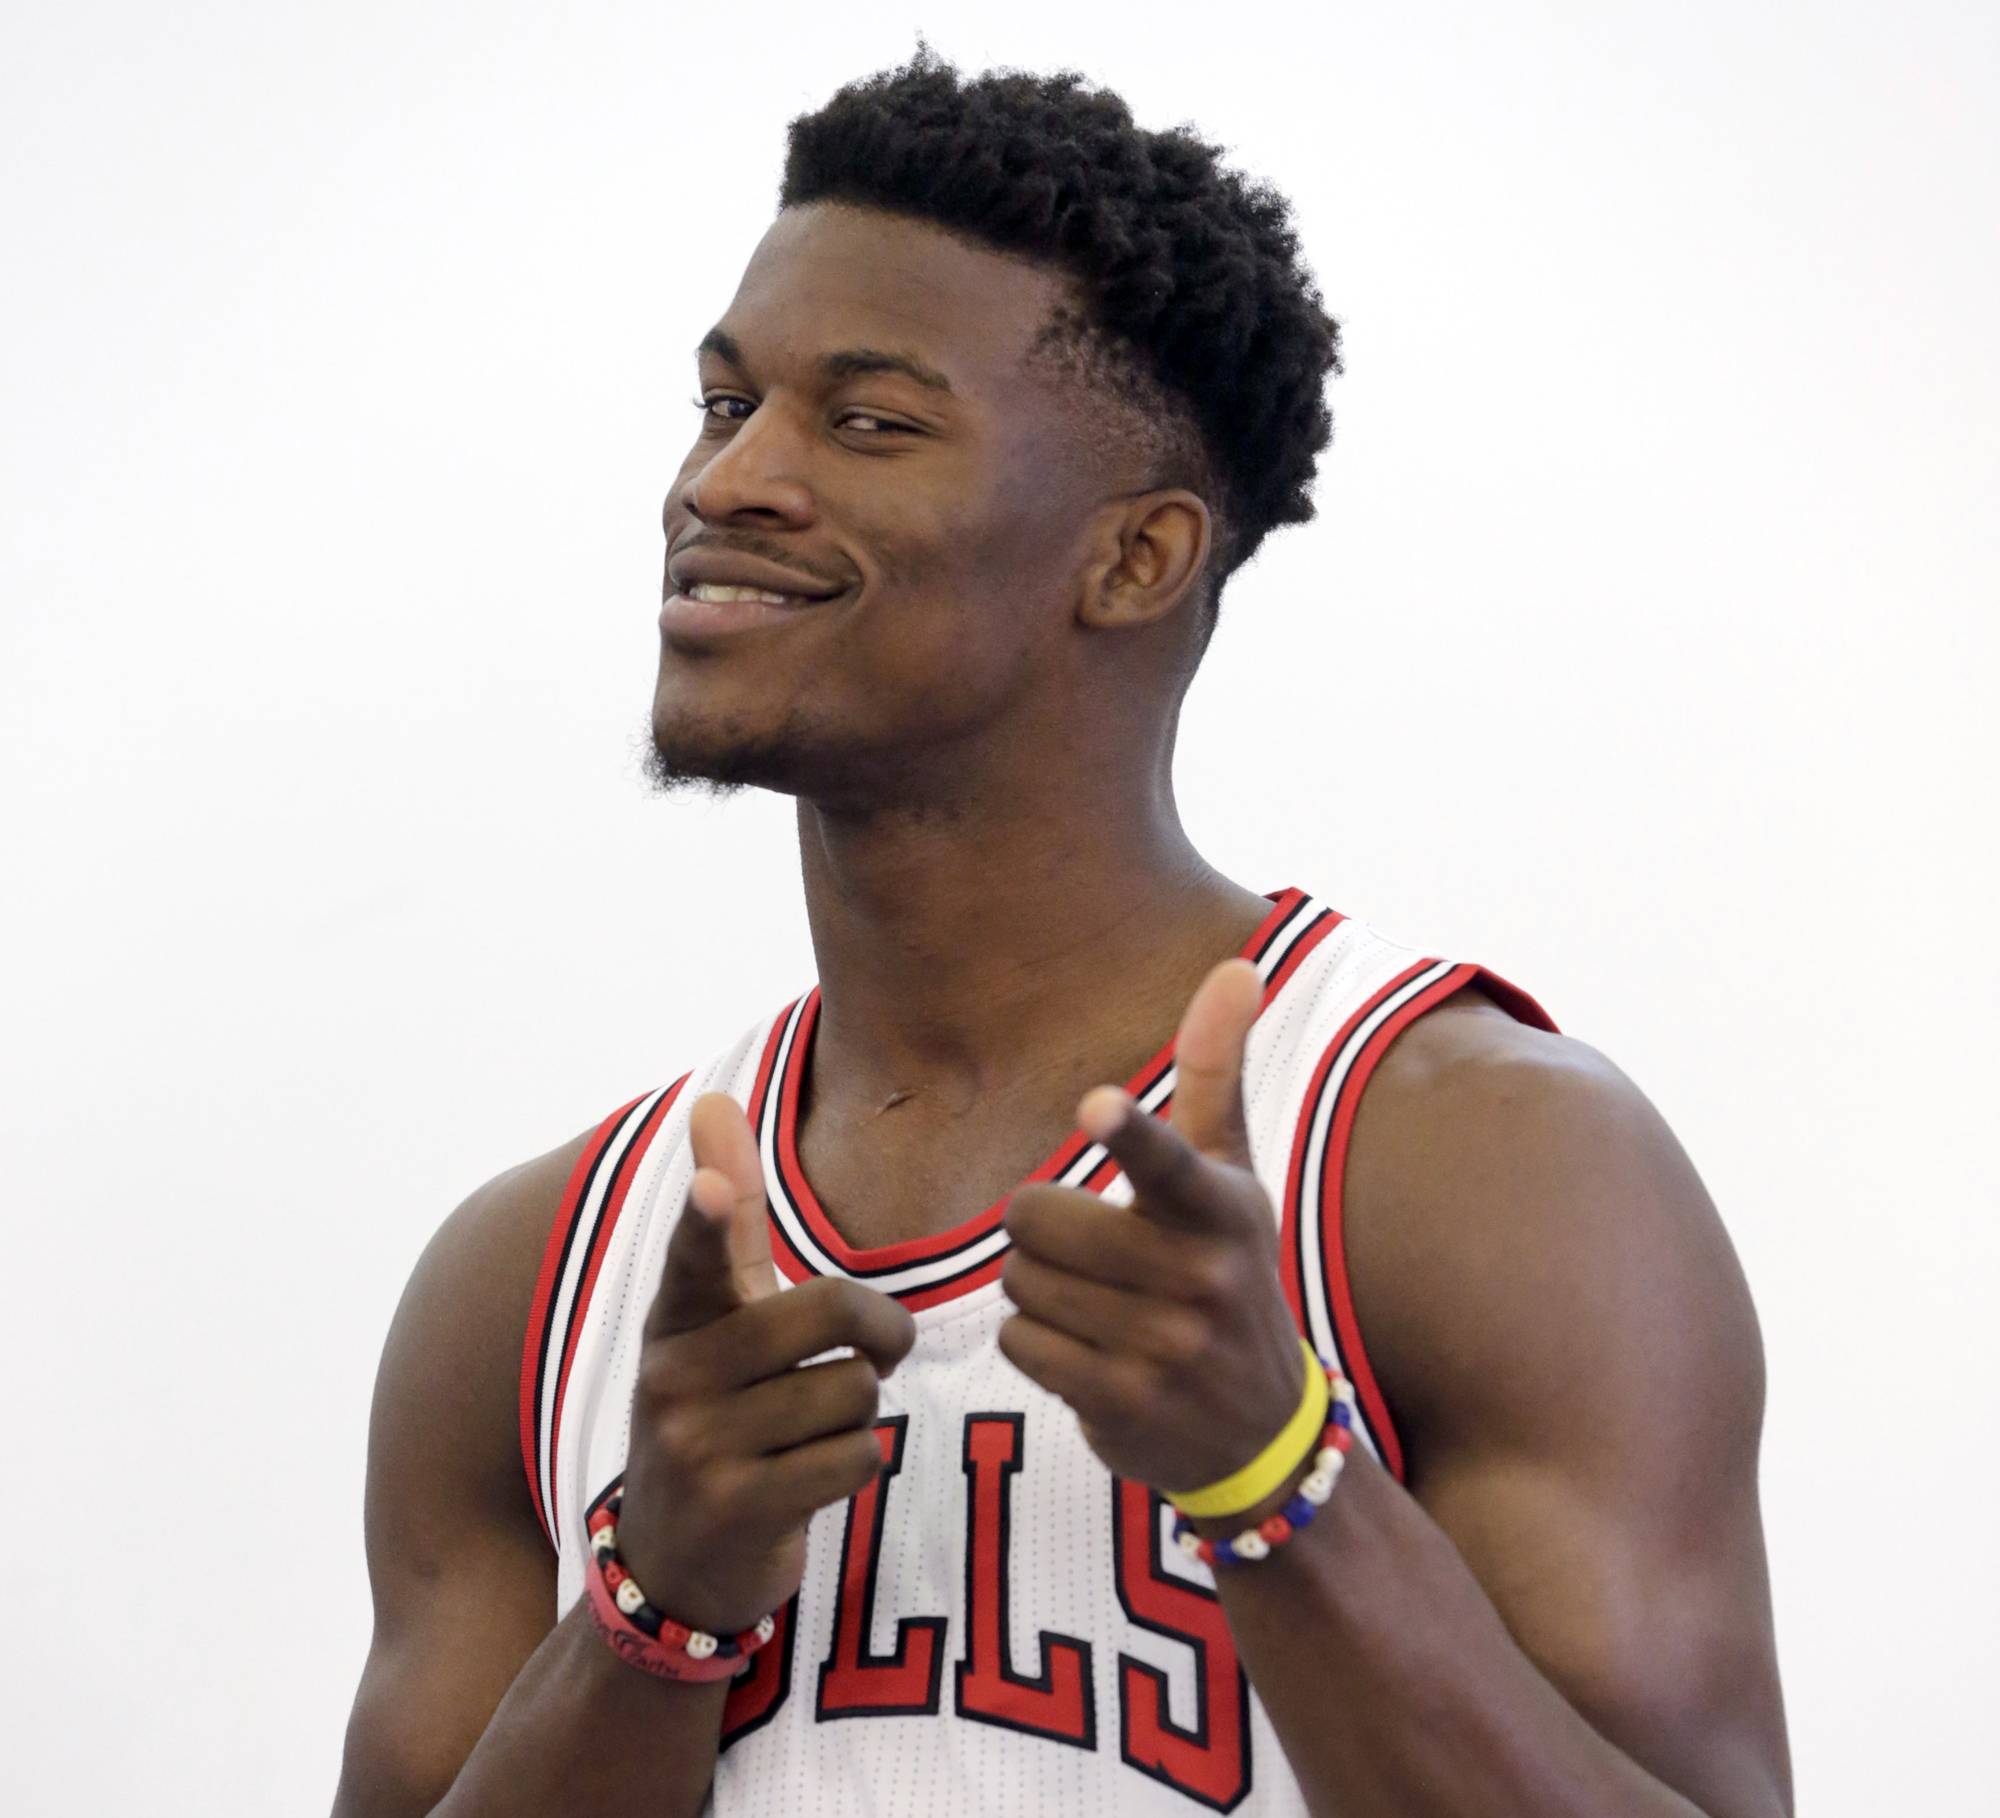 b08231163fbd Jimmy Butler on Singing for Taylor Swift and Winning in Chicago ...